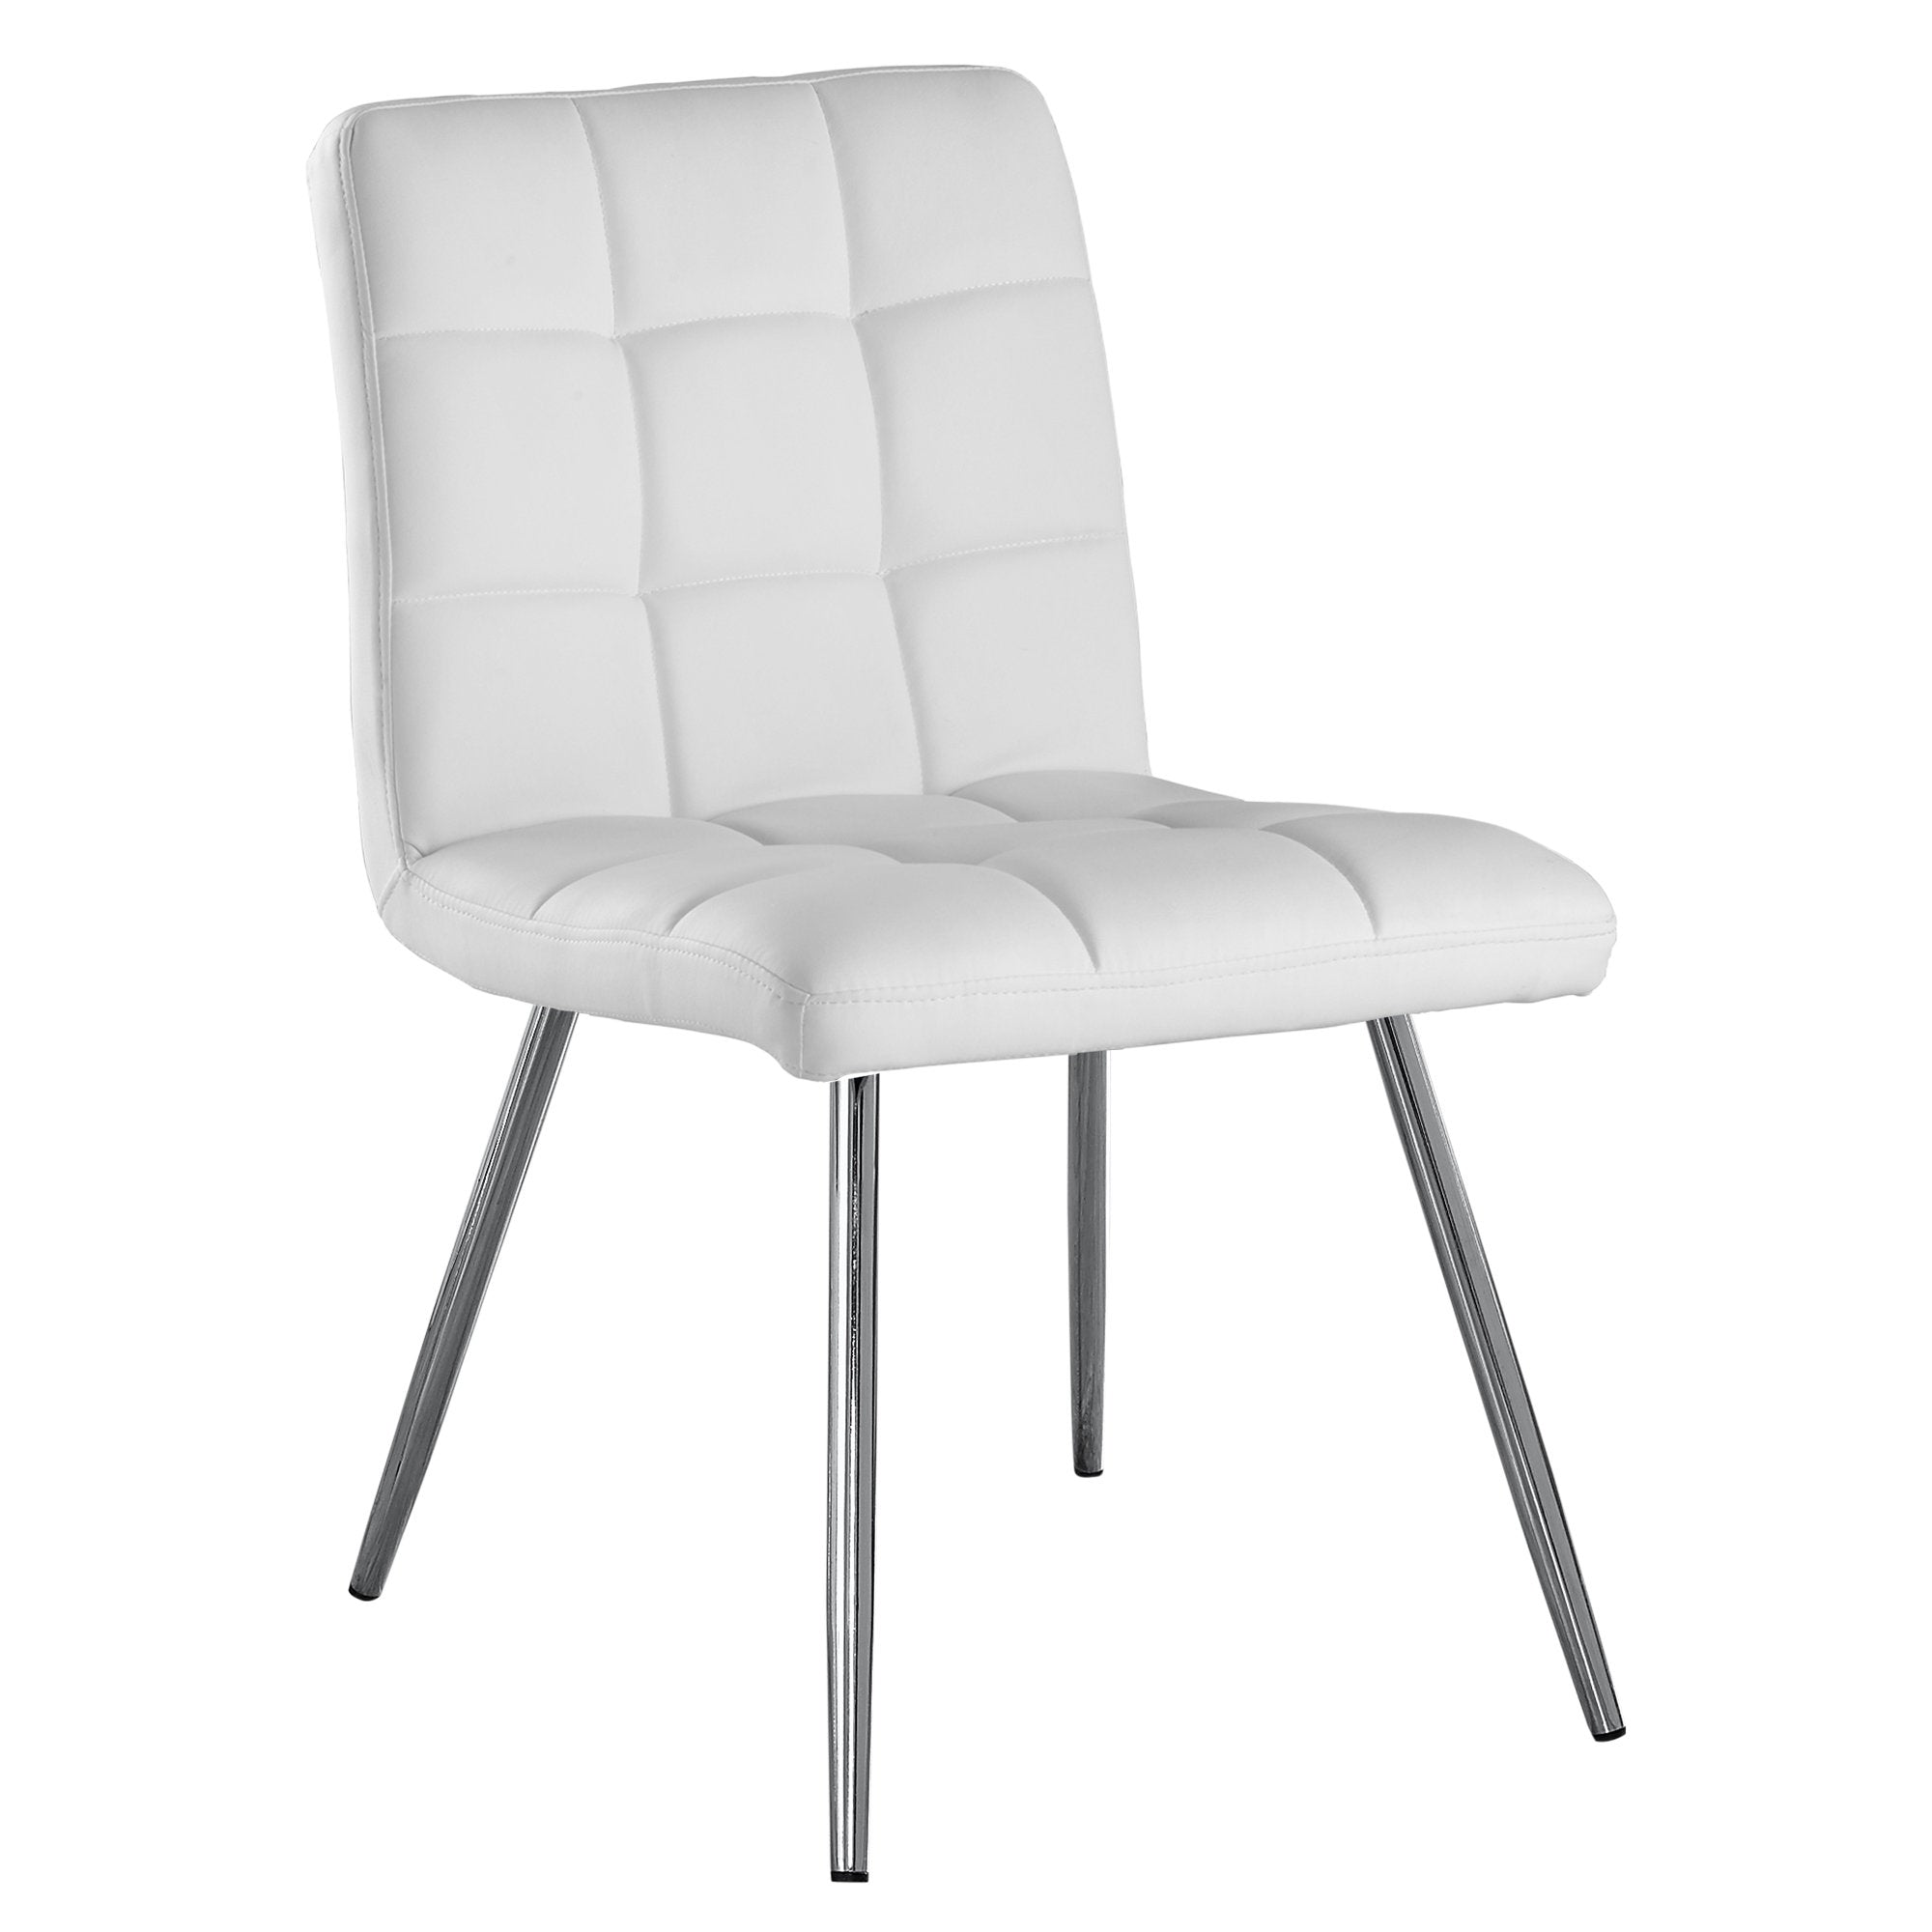 "47"" x 37"" x 63"" White, Foam, Metal, Polyurethane, Leather-Look - Dining Chairs 2pcs"